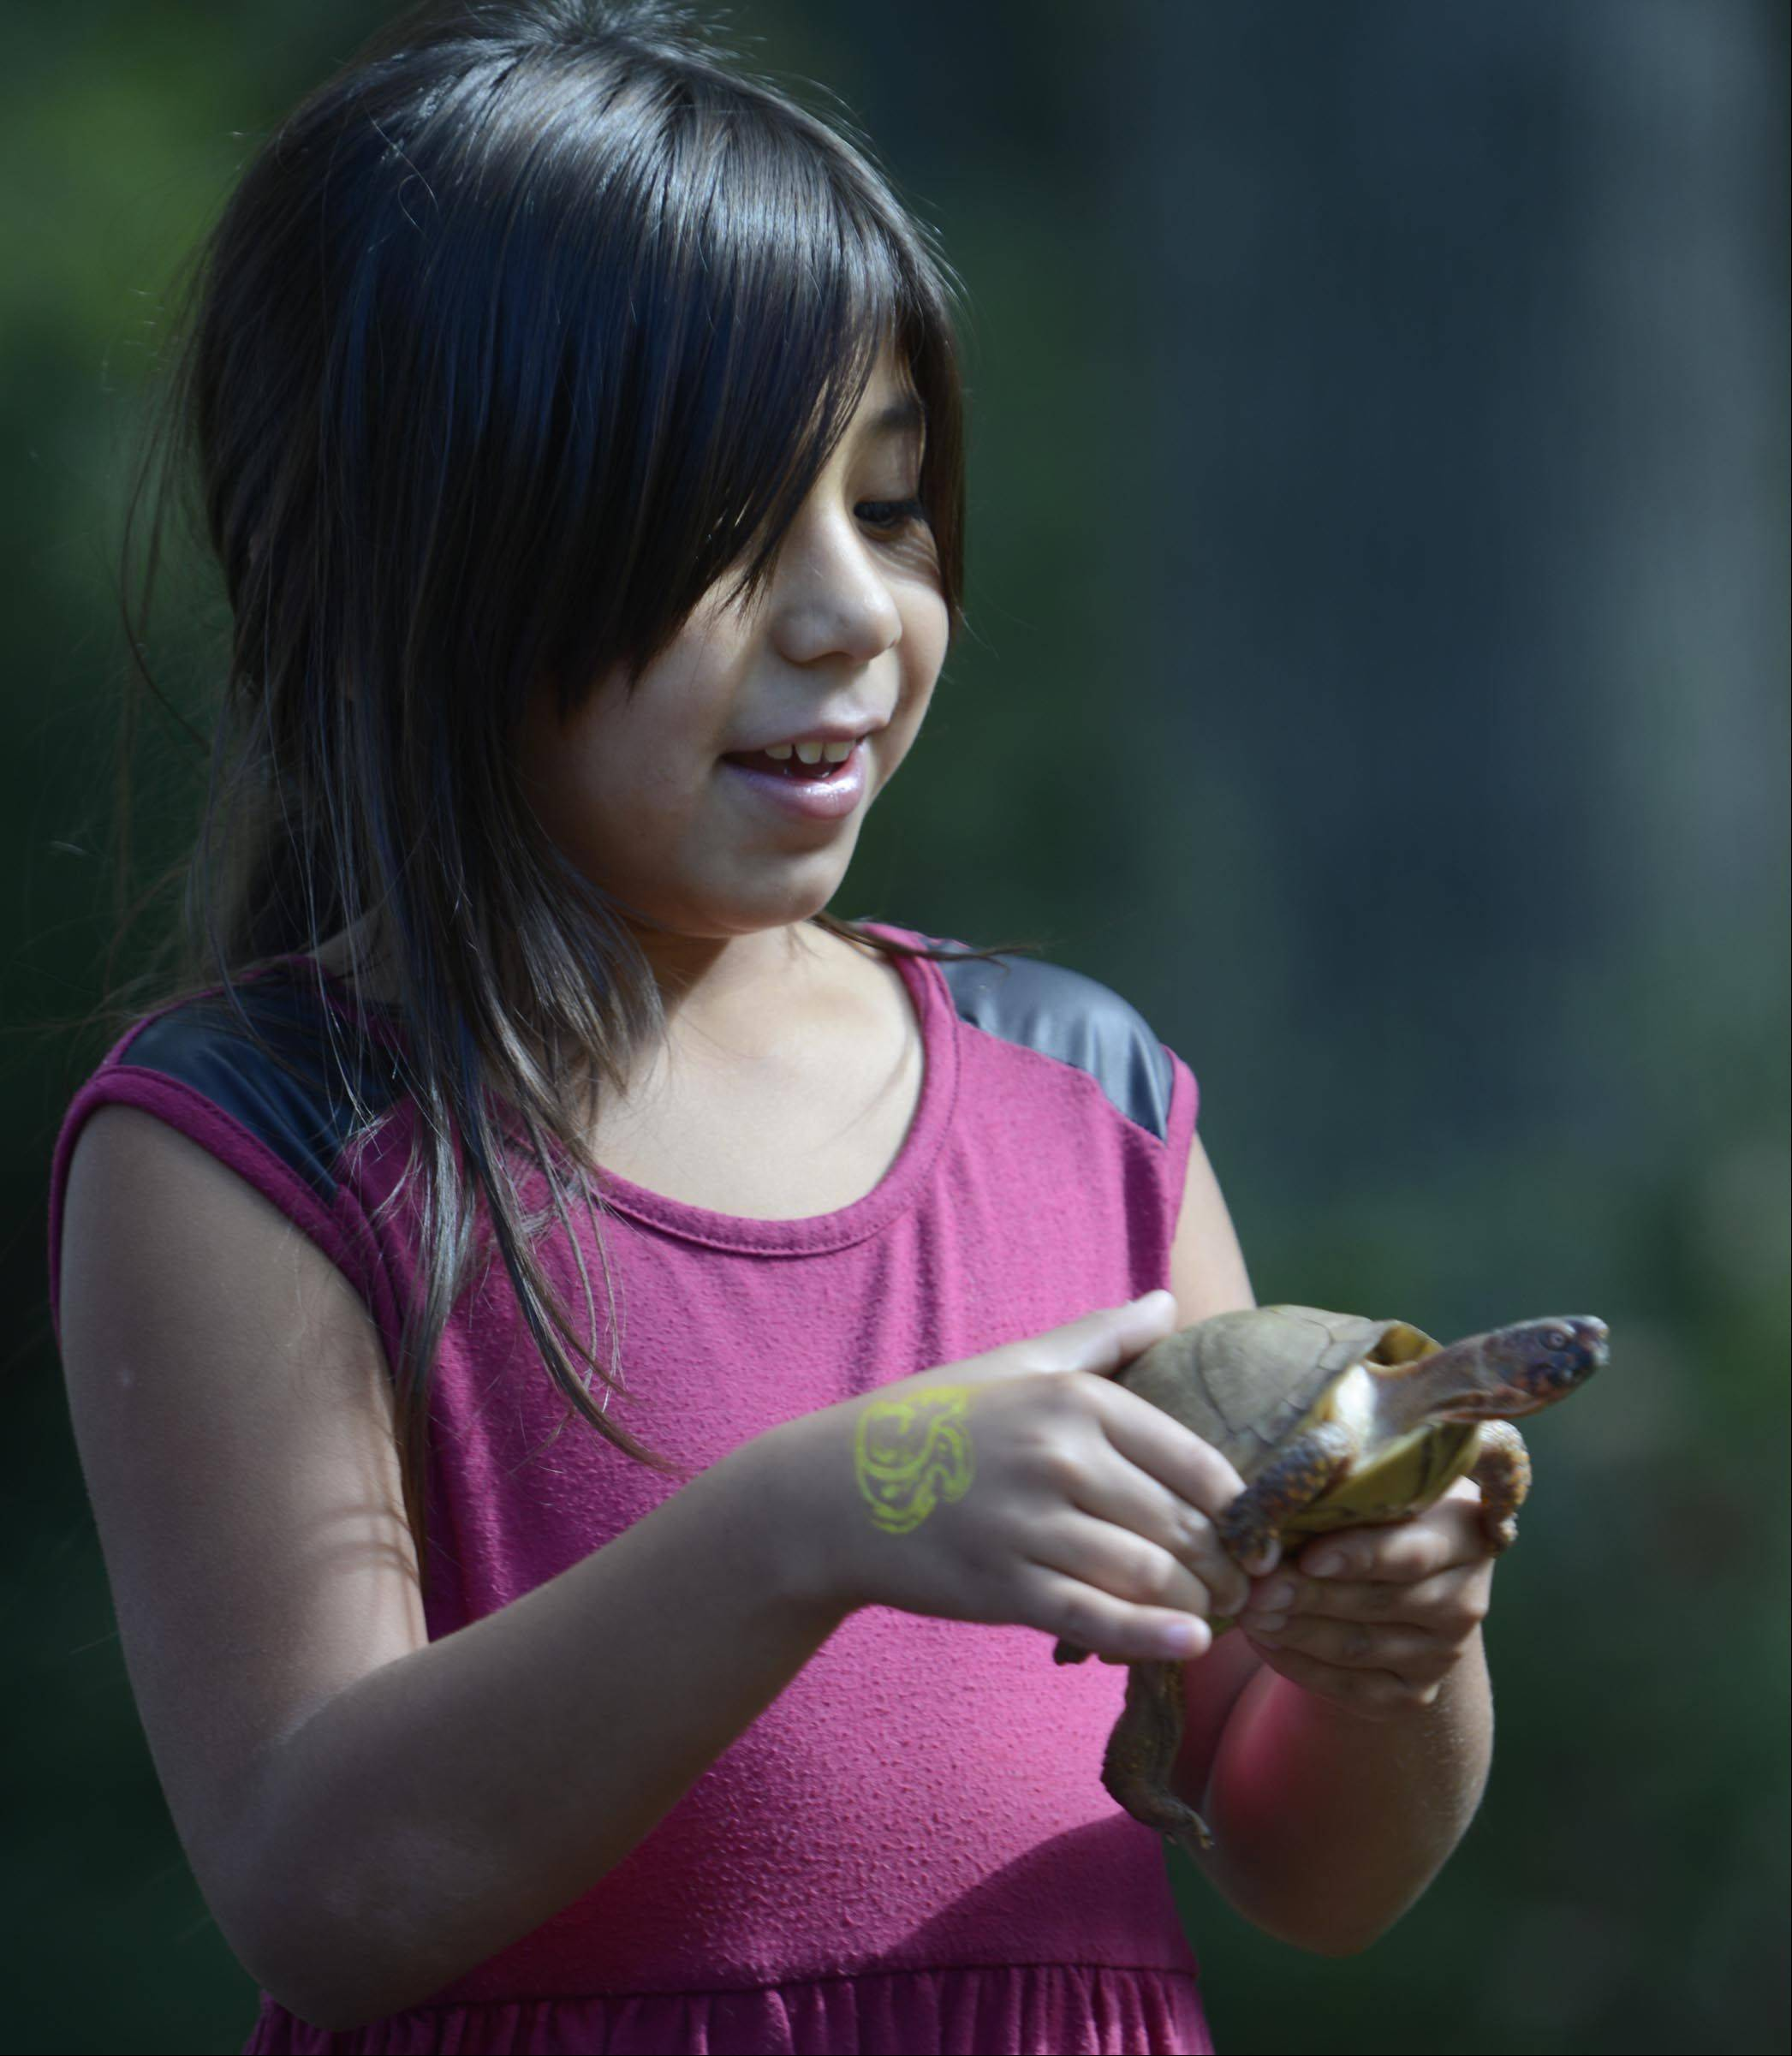 Sophia Finch, 8, holds a three-toed box turtle named Toby, Sunday at the Fox Valley Wildlife Center Open House in the Elburn Forest Preserve, west of Elburn on Route 38. She is from Geneva and was with her brother Robert, 11, and mother Alyce, who is a volunteer at the center.